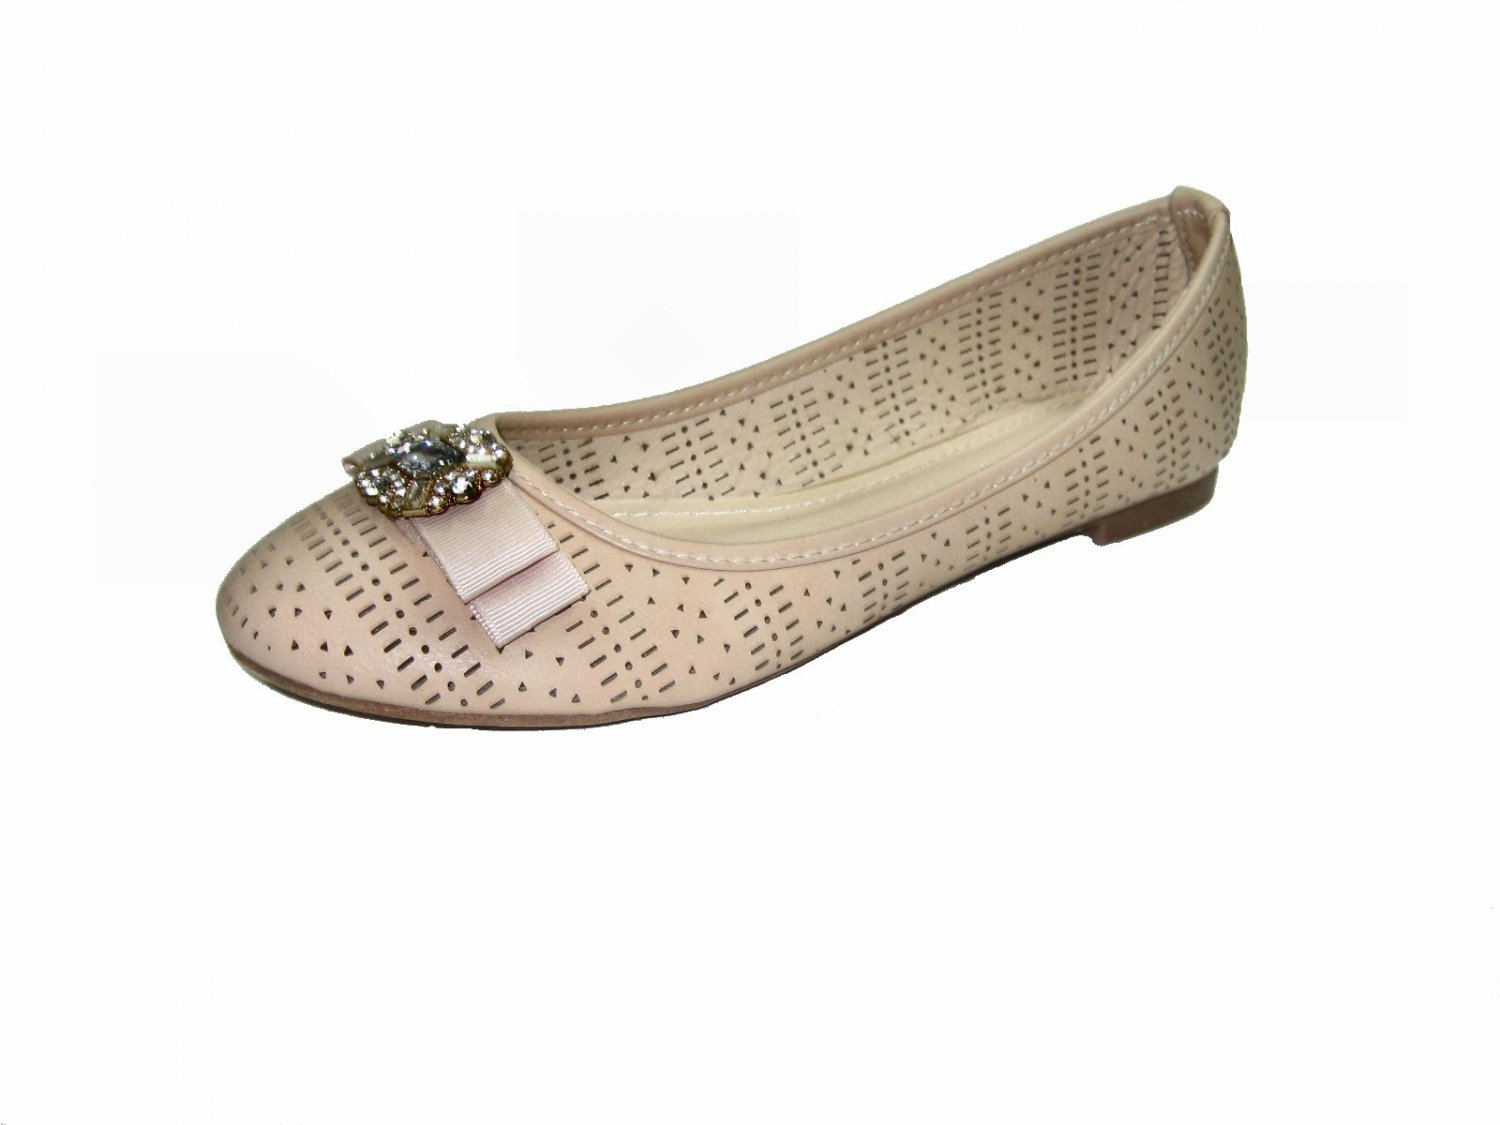 Top Moda SB-25 ballerina flats slip on pumps rhinestone bejeweled bow toe shoes beige size 9